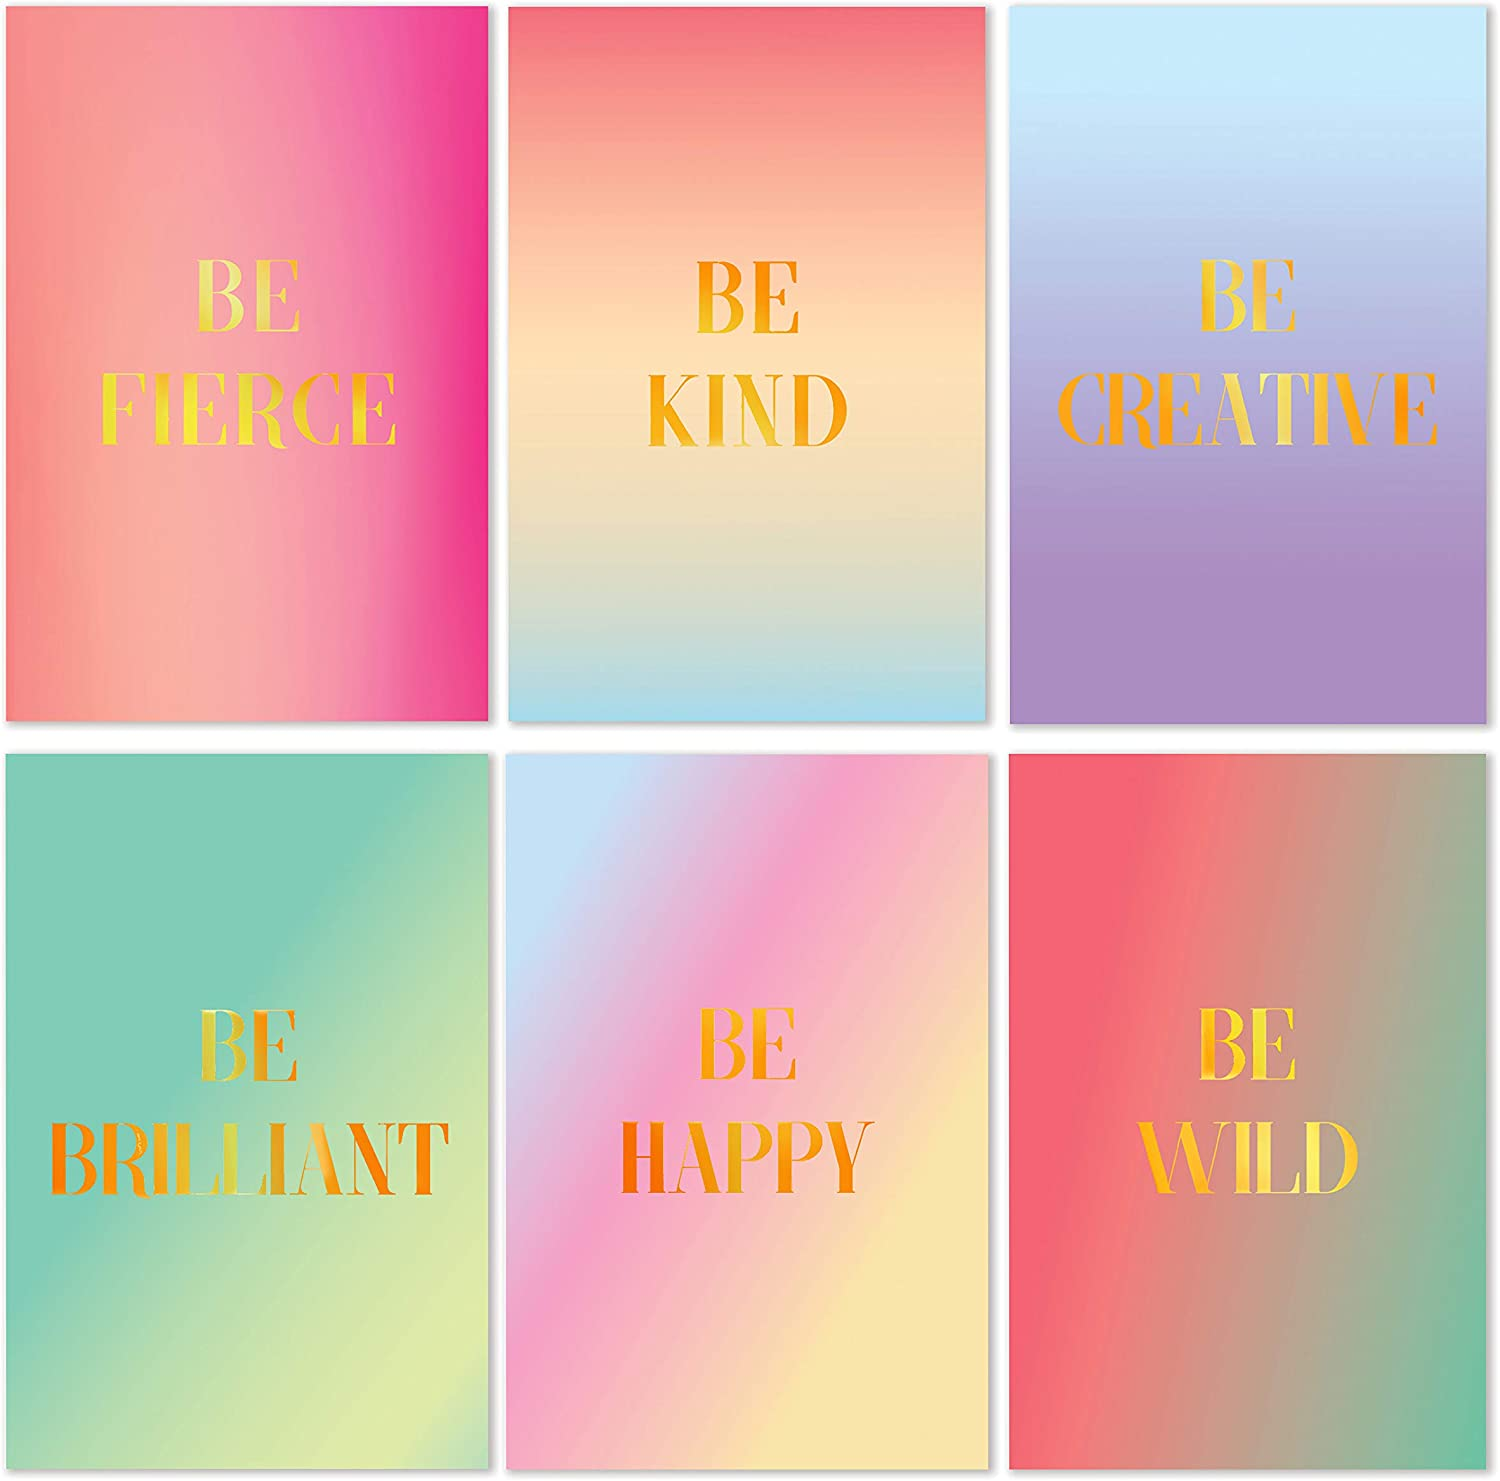 Cavepop Inspirational Greeting Cards Stationary Set, Thinking of You Encouragement Cards with Envelopes - 4 x 6 Inches - Pink, Blue and Purple Ombre with Gold Foil - 36 Pack (6 Designs)